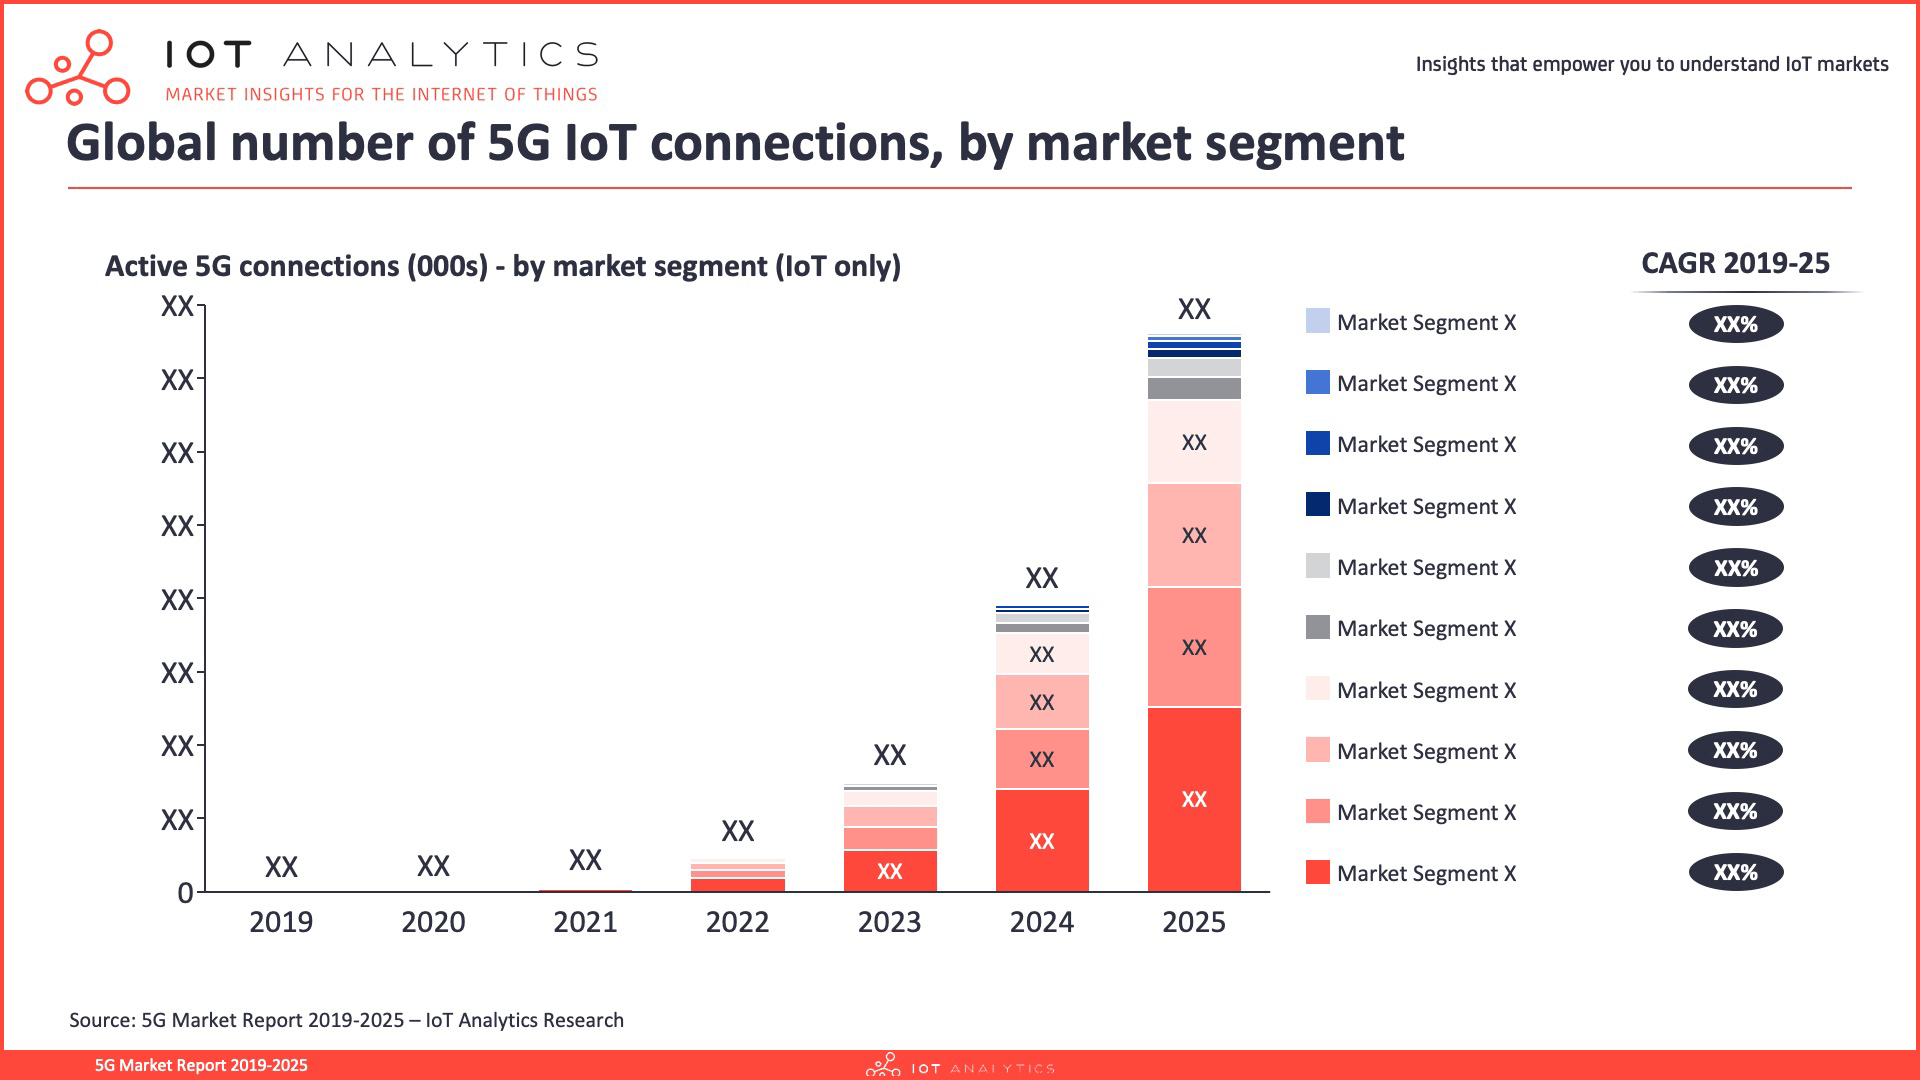 5G Market Report 2019-2025 - Global 5G IoT connections by market segment